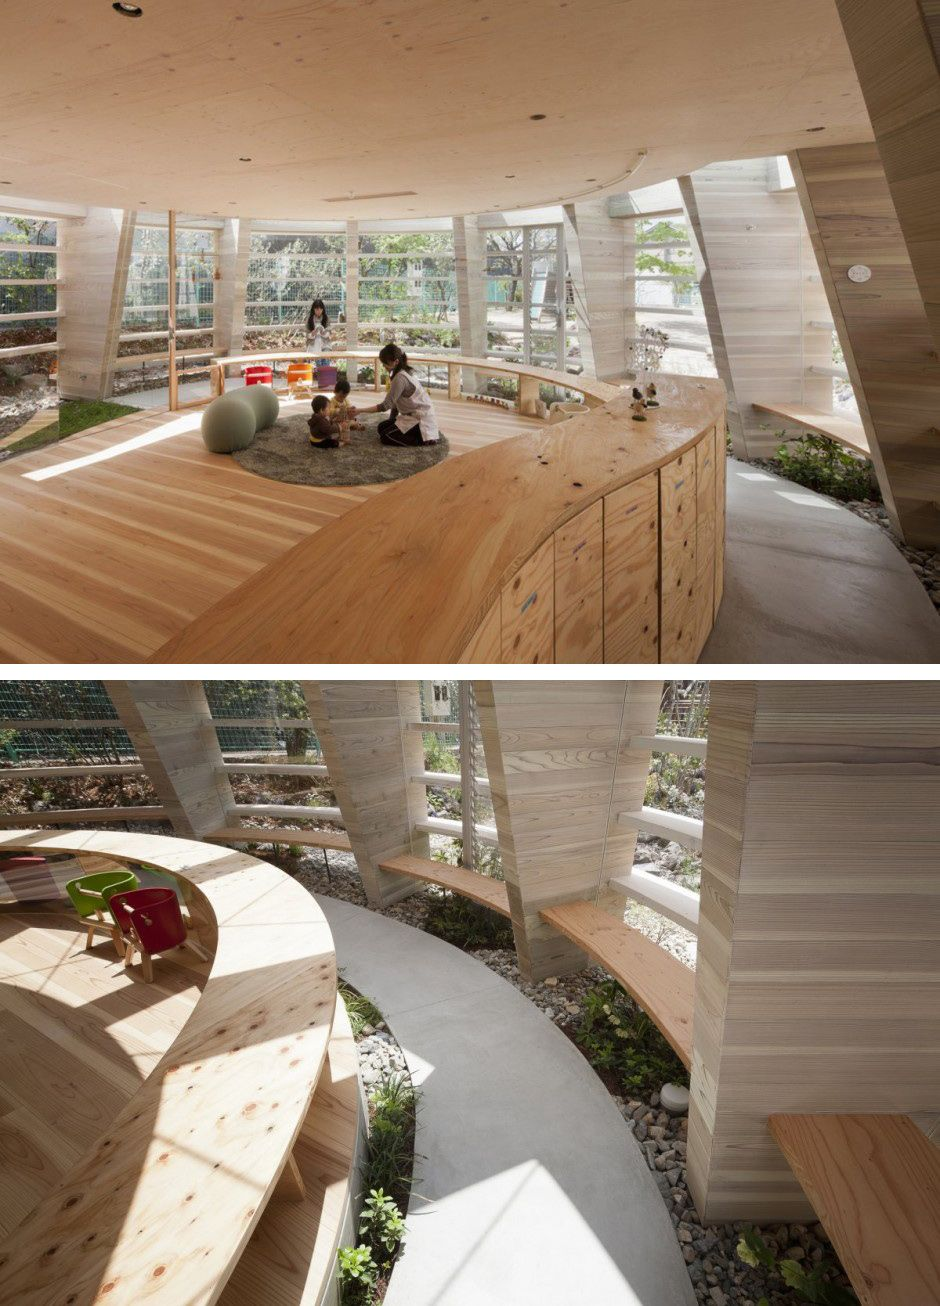 Peanuts Nursery School By Uid Architects